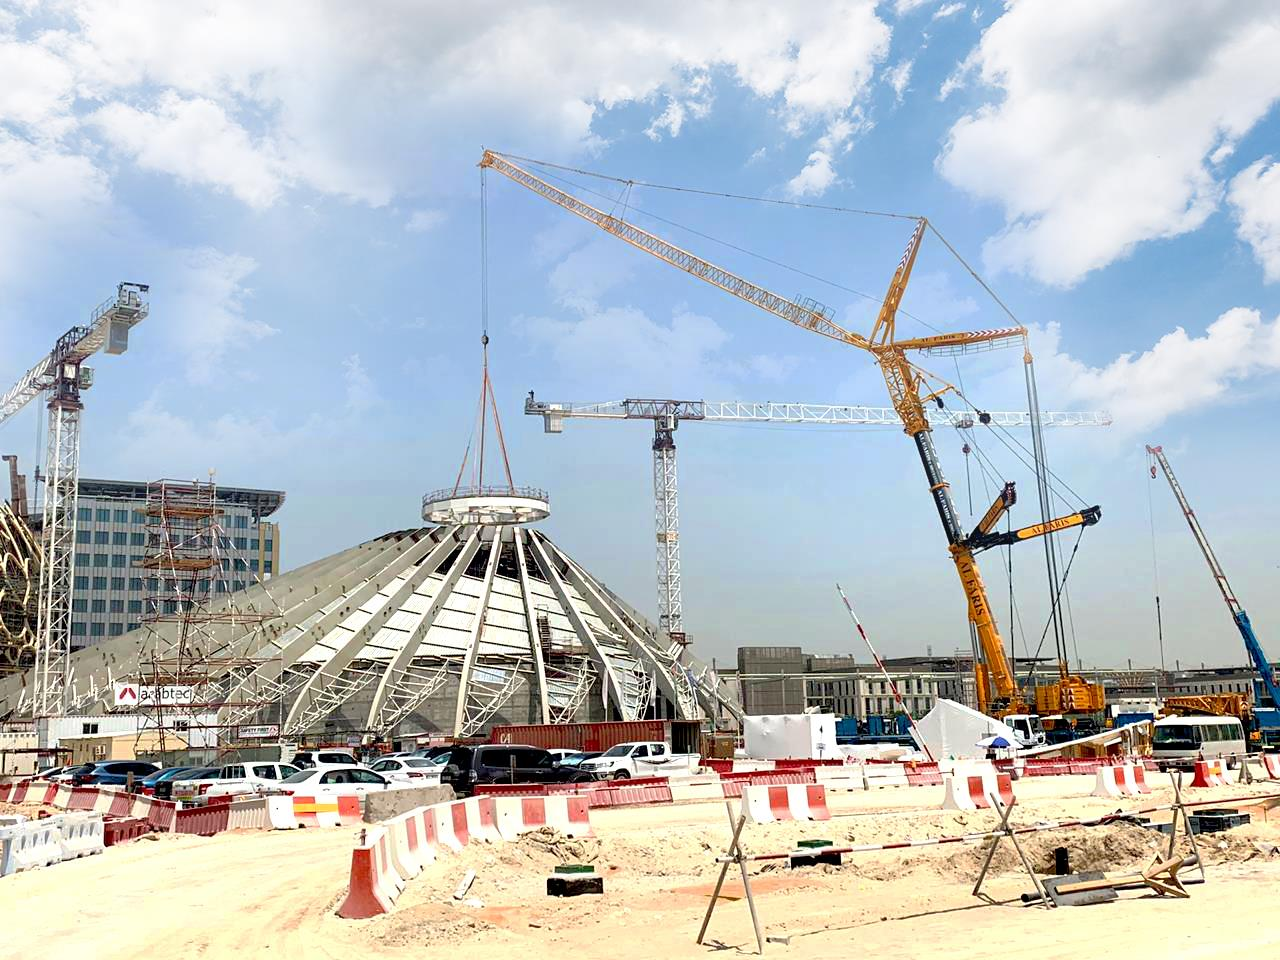 Last year Al Faris was awarded a project at the site for Expo 2020 to lift and install 42 structural steel elements of the falcon- inspired UAE pavilion structure.